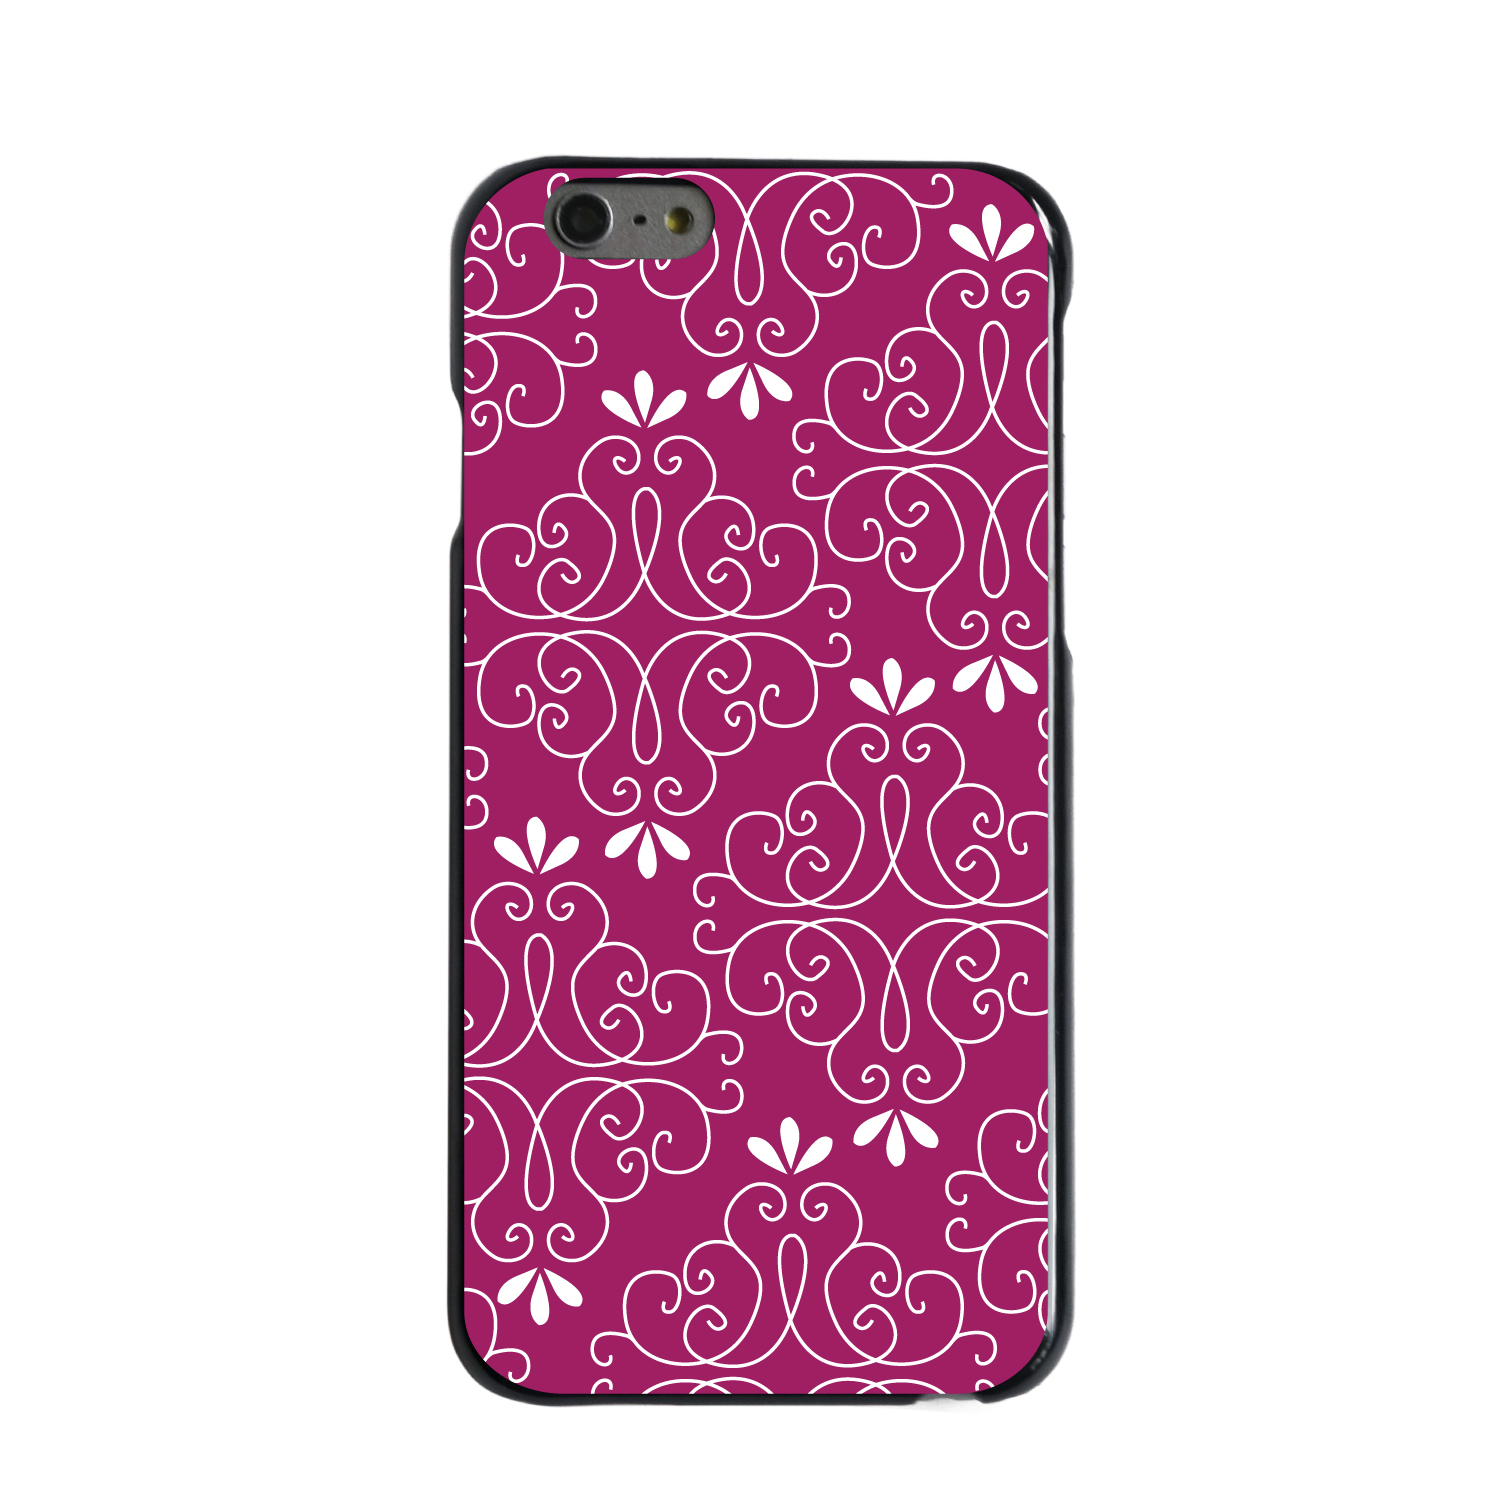 "CUSTOM Black Hard Plastic Snap-On Case for Apple iPhone 6 / 6S (4.7"" Screen) - Dark Fuchsia White Floral"